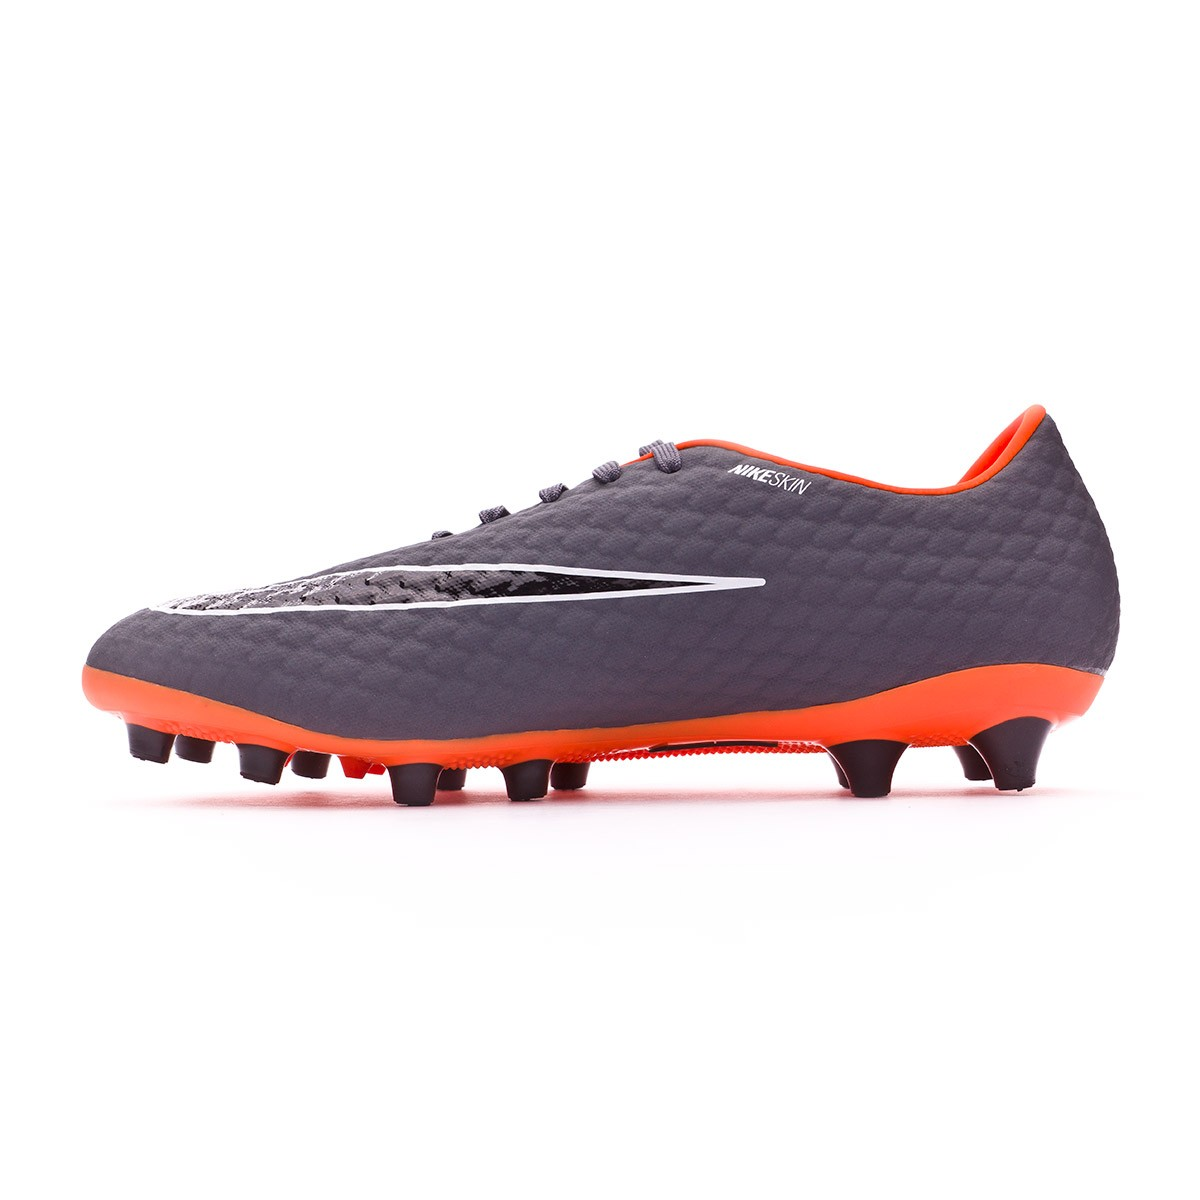 157be2b0b6ecc Chuteira Nike Hypervenom Phantom III Academy AG-Pro Dark grey-Total  orange-White - Loja de futebol Fútbol Emotion